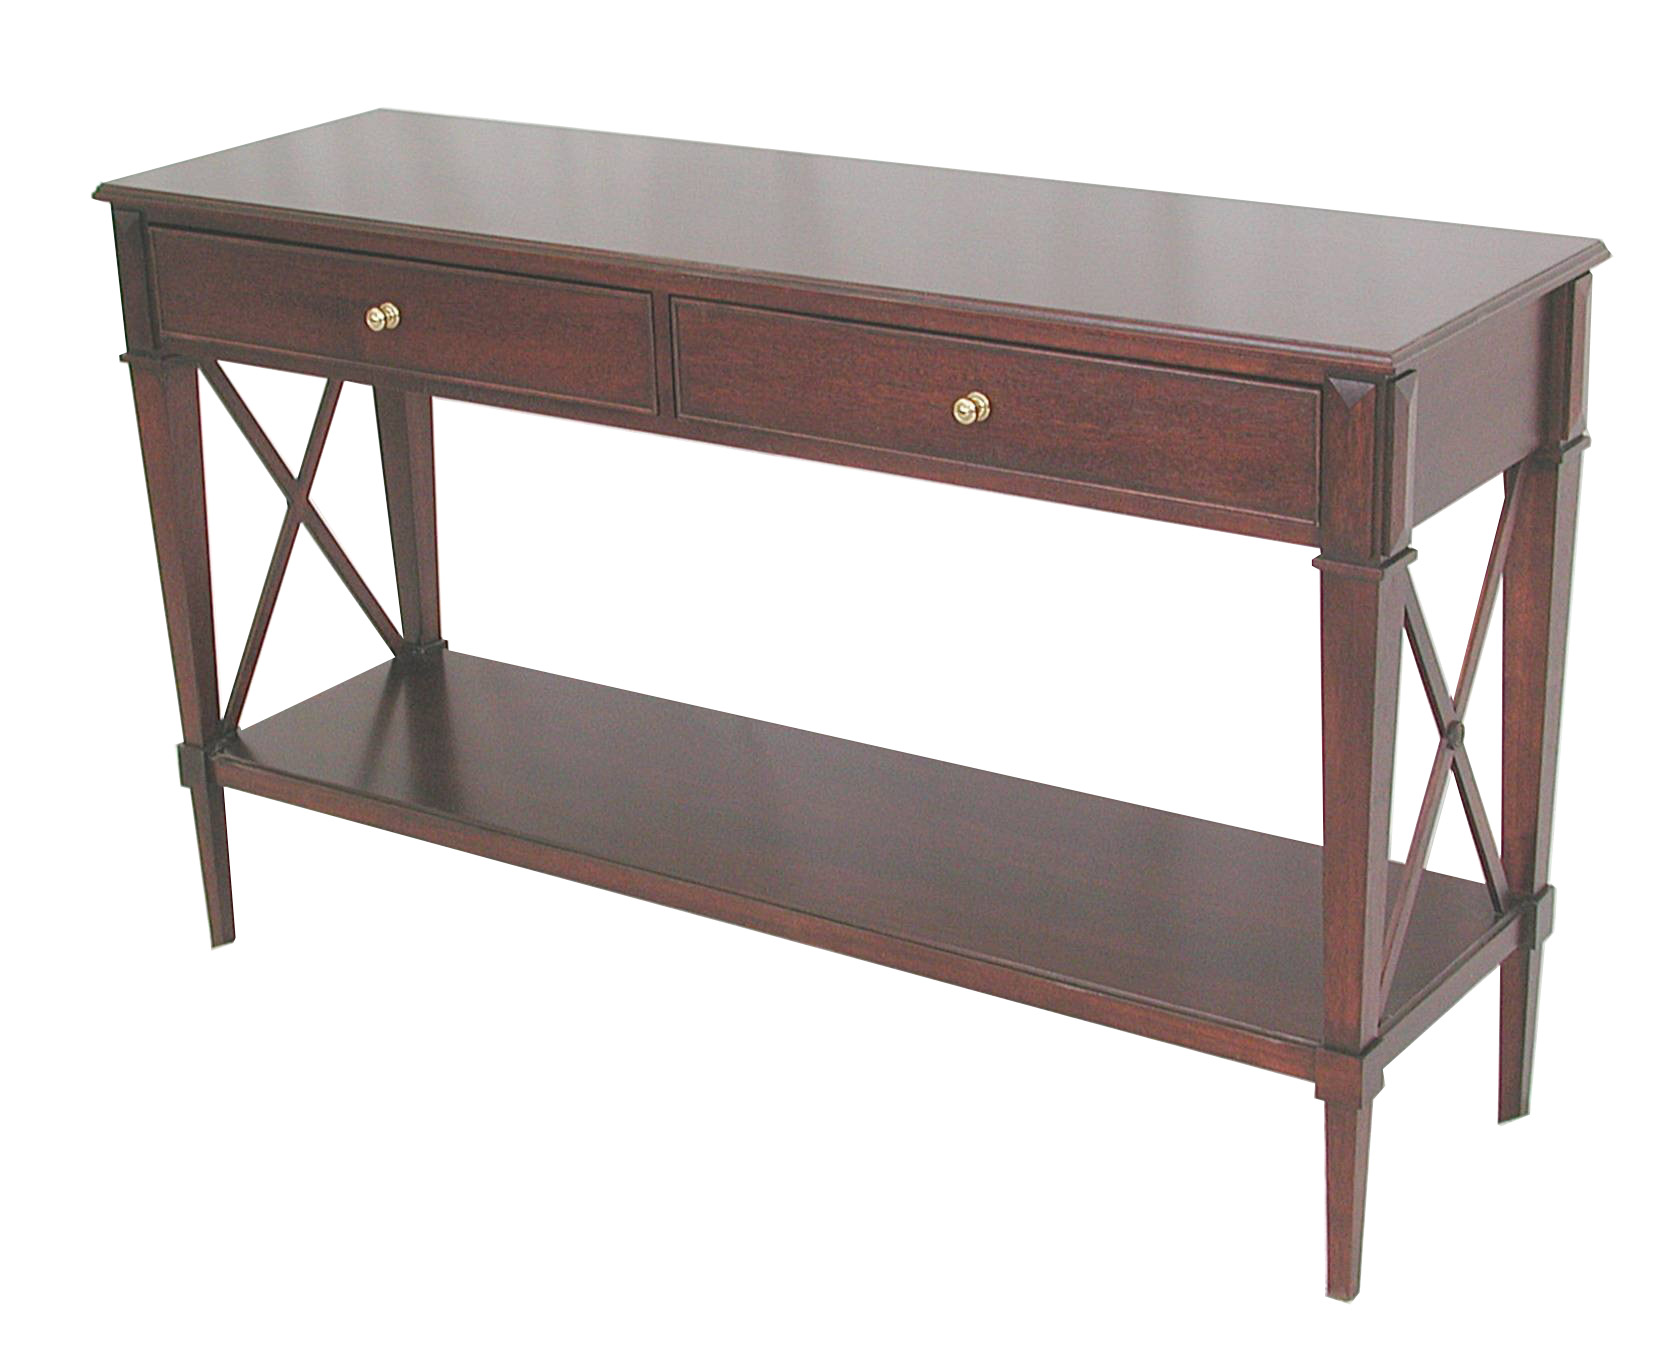 X Console Table #1013C